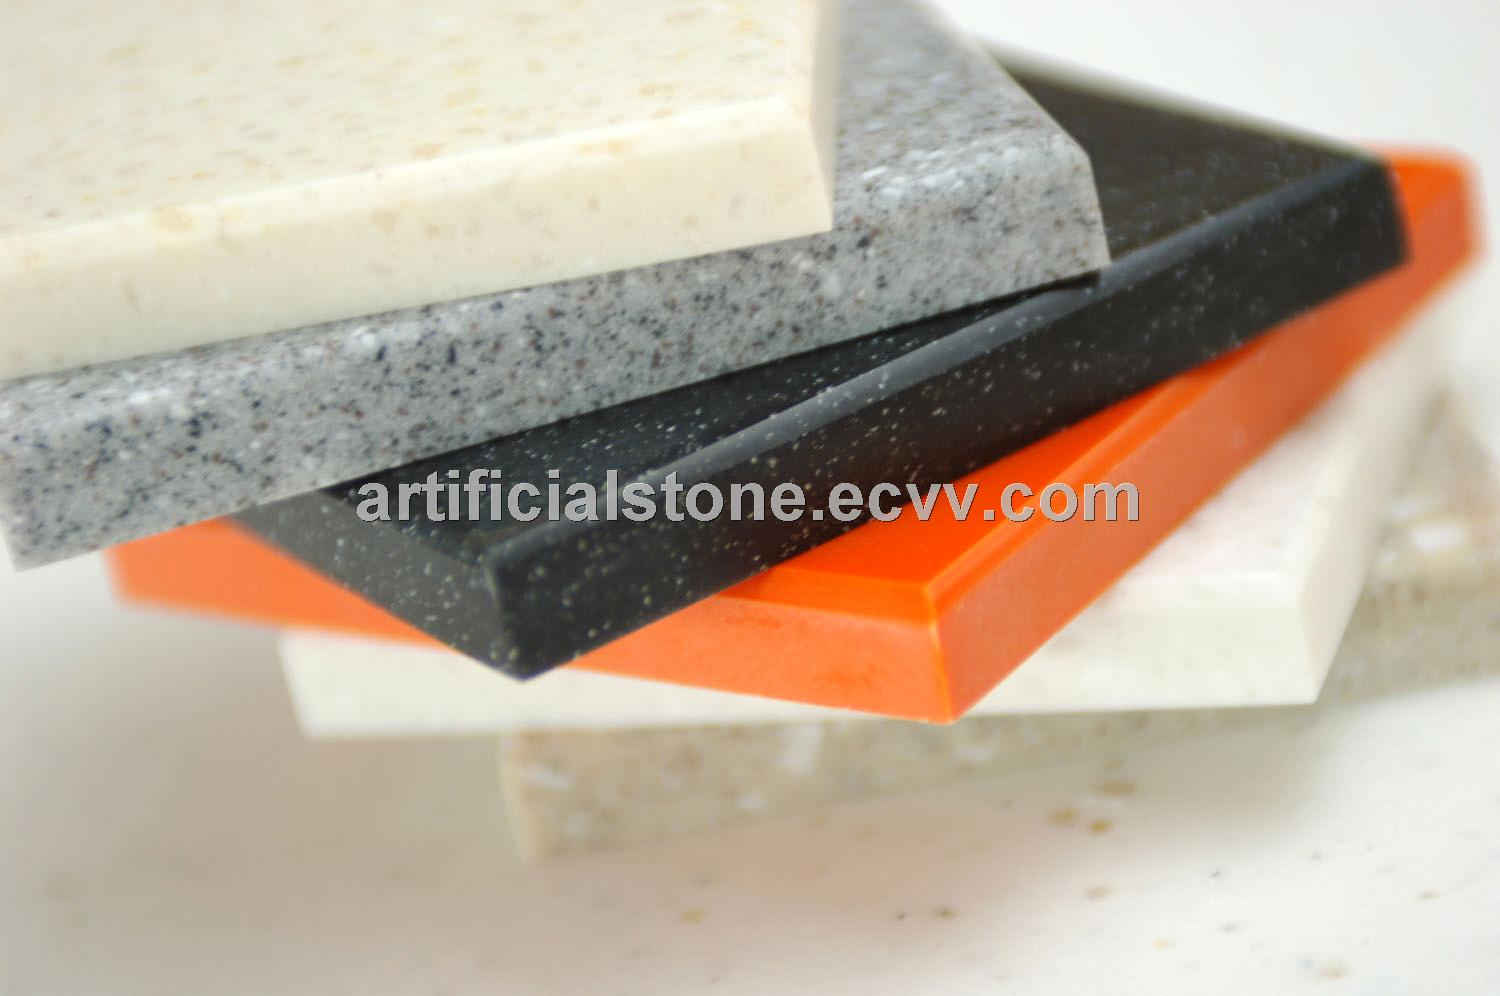 Acrylic Solid Surface Stone Sheet Slab Countertops From China Manufacturer Manufactory Factory And Supplier On Ecvv